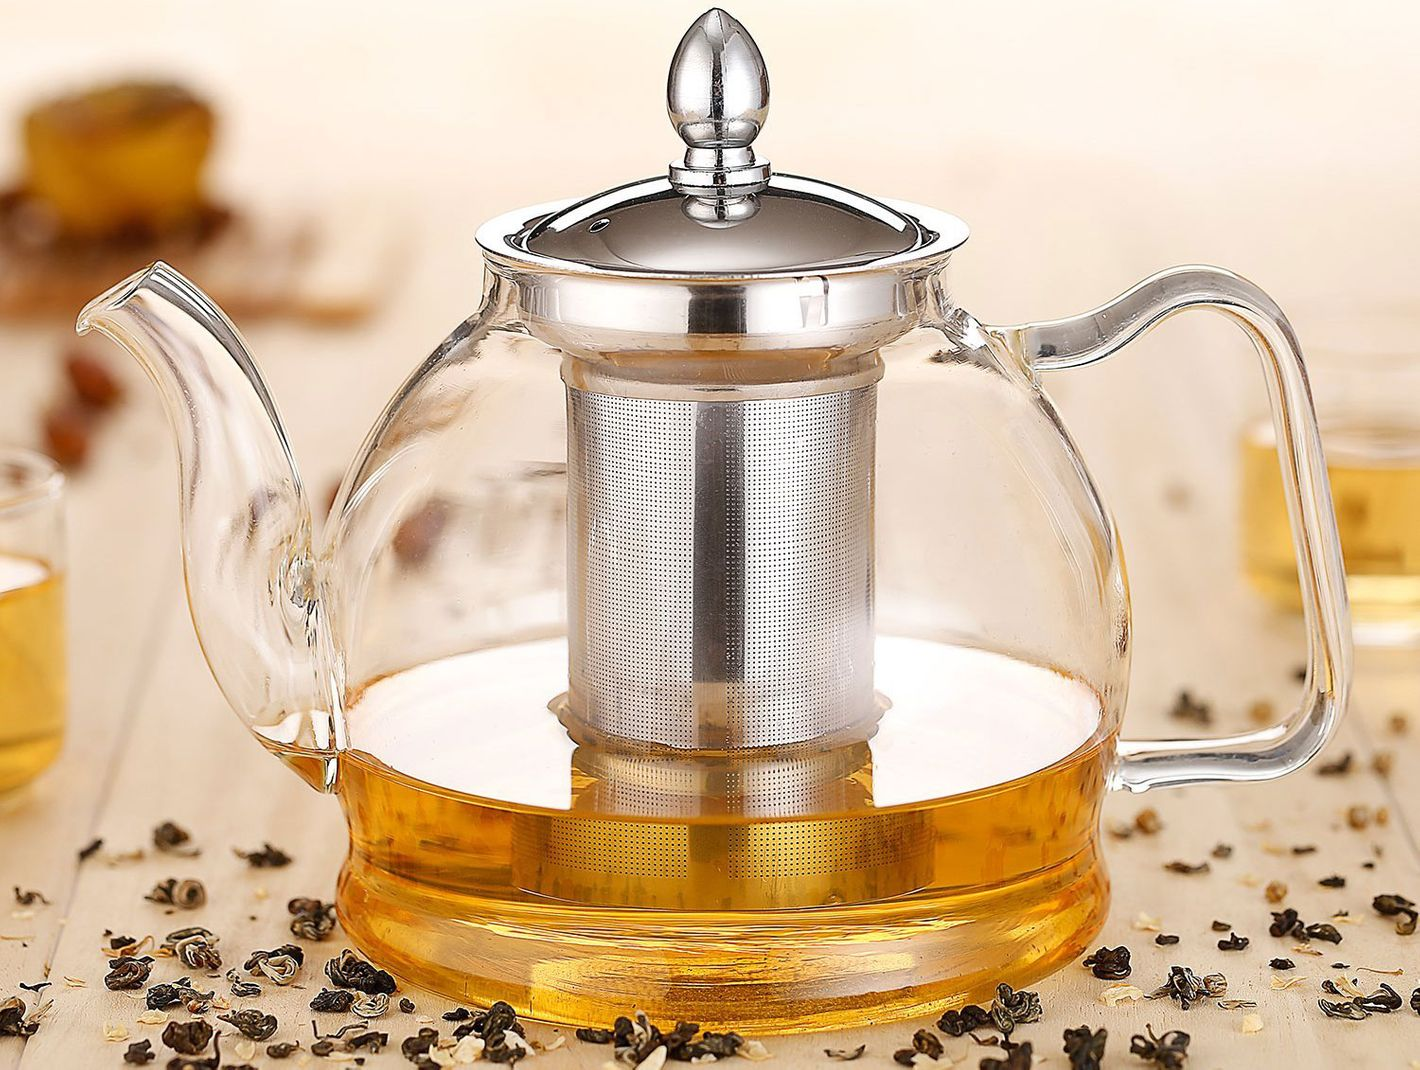 Hiware 1000ml Glass Teapot With Removable Infuser